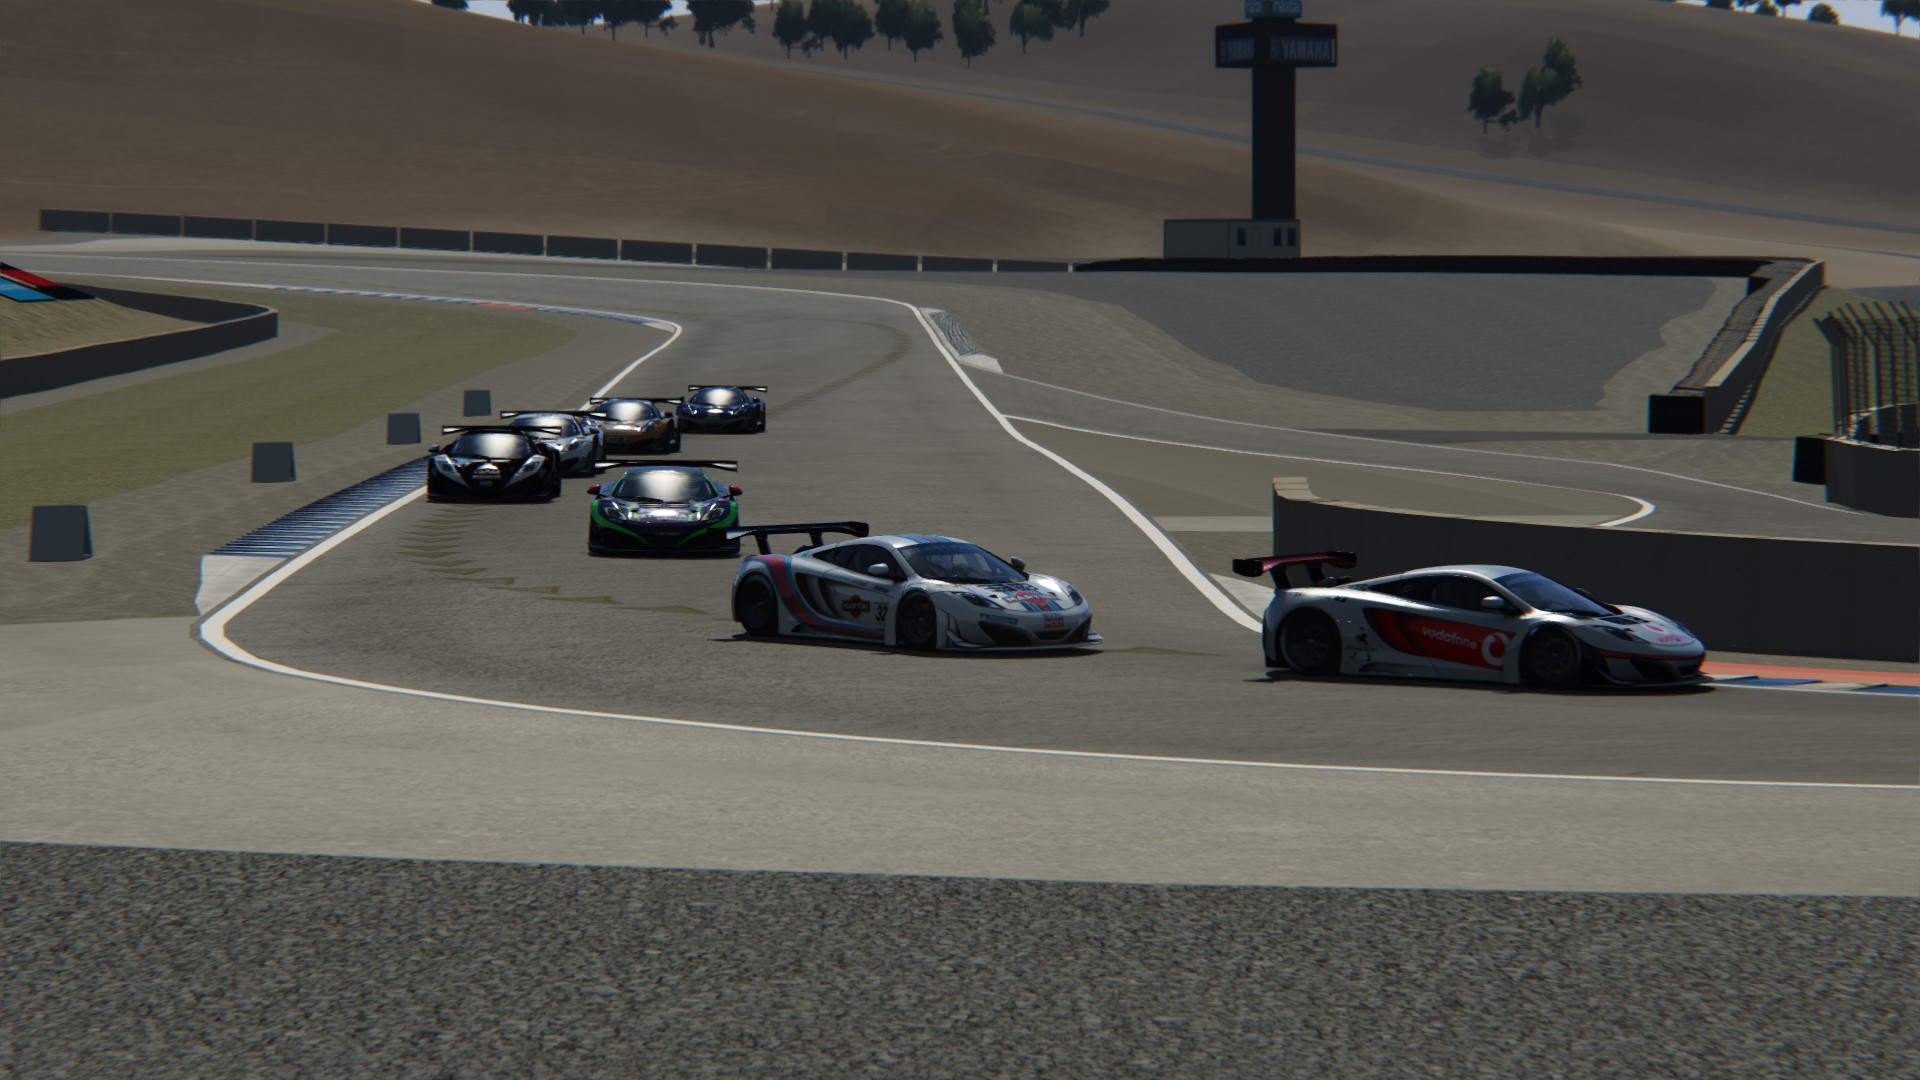 Screenshot_mclaren_mp412c_gt3_bs_lagunaseca_27-5-116-12-39-41.jpg